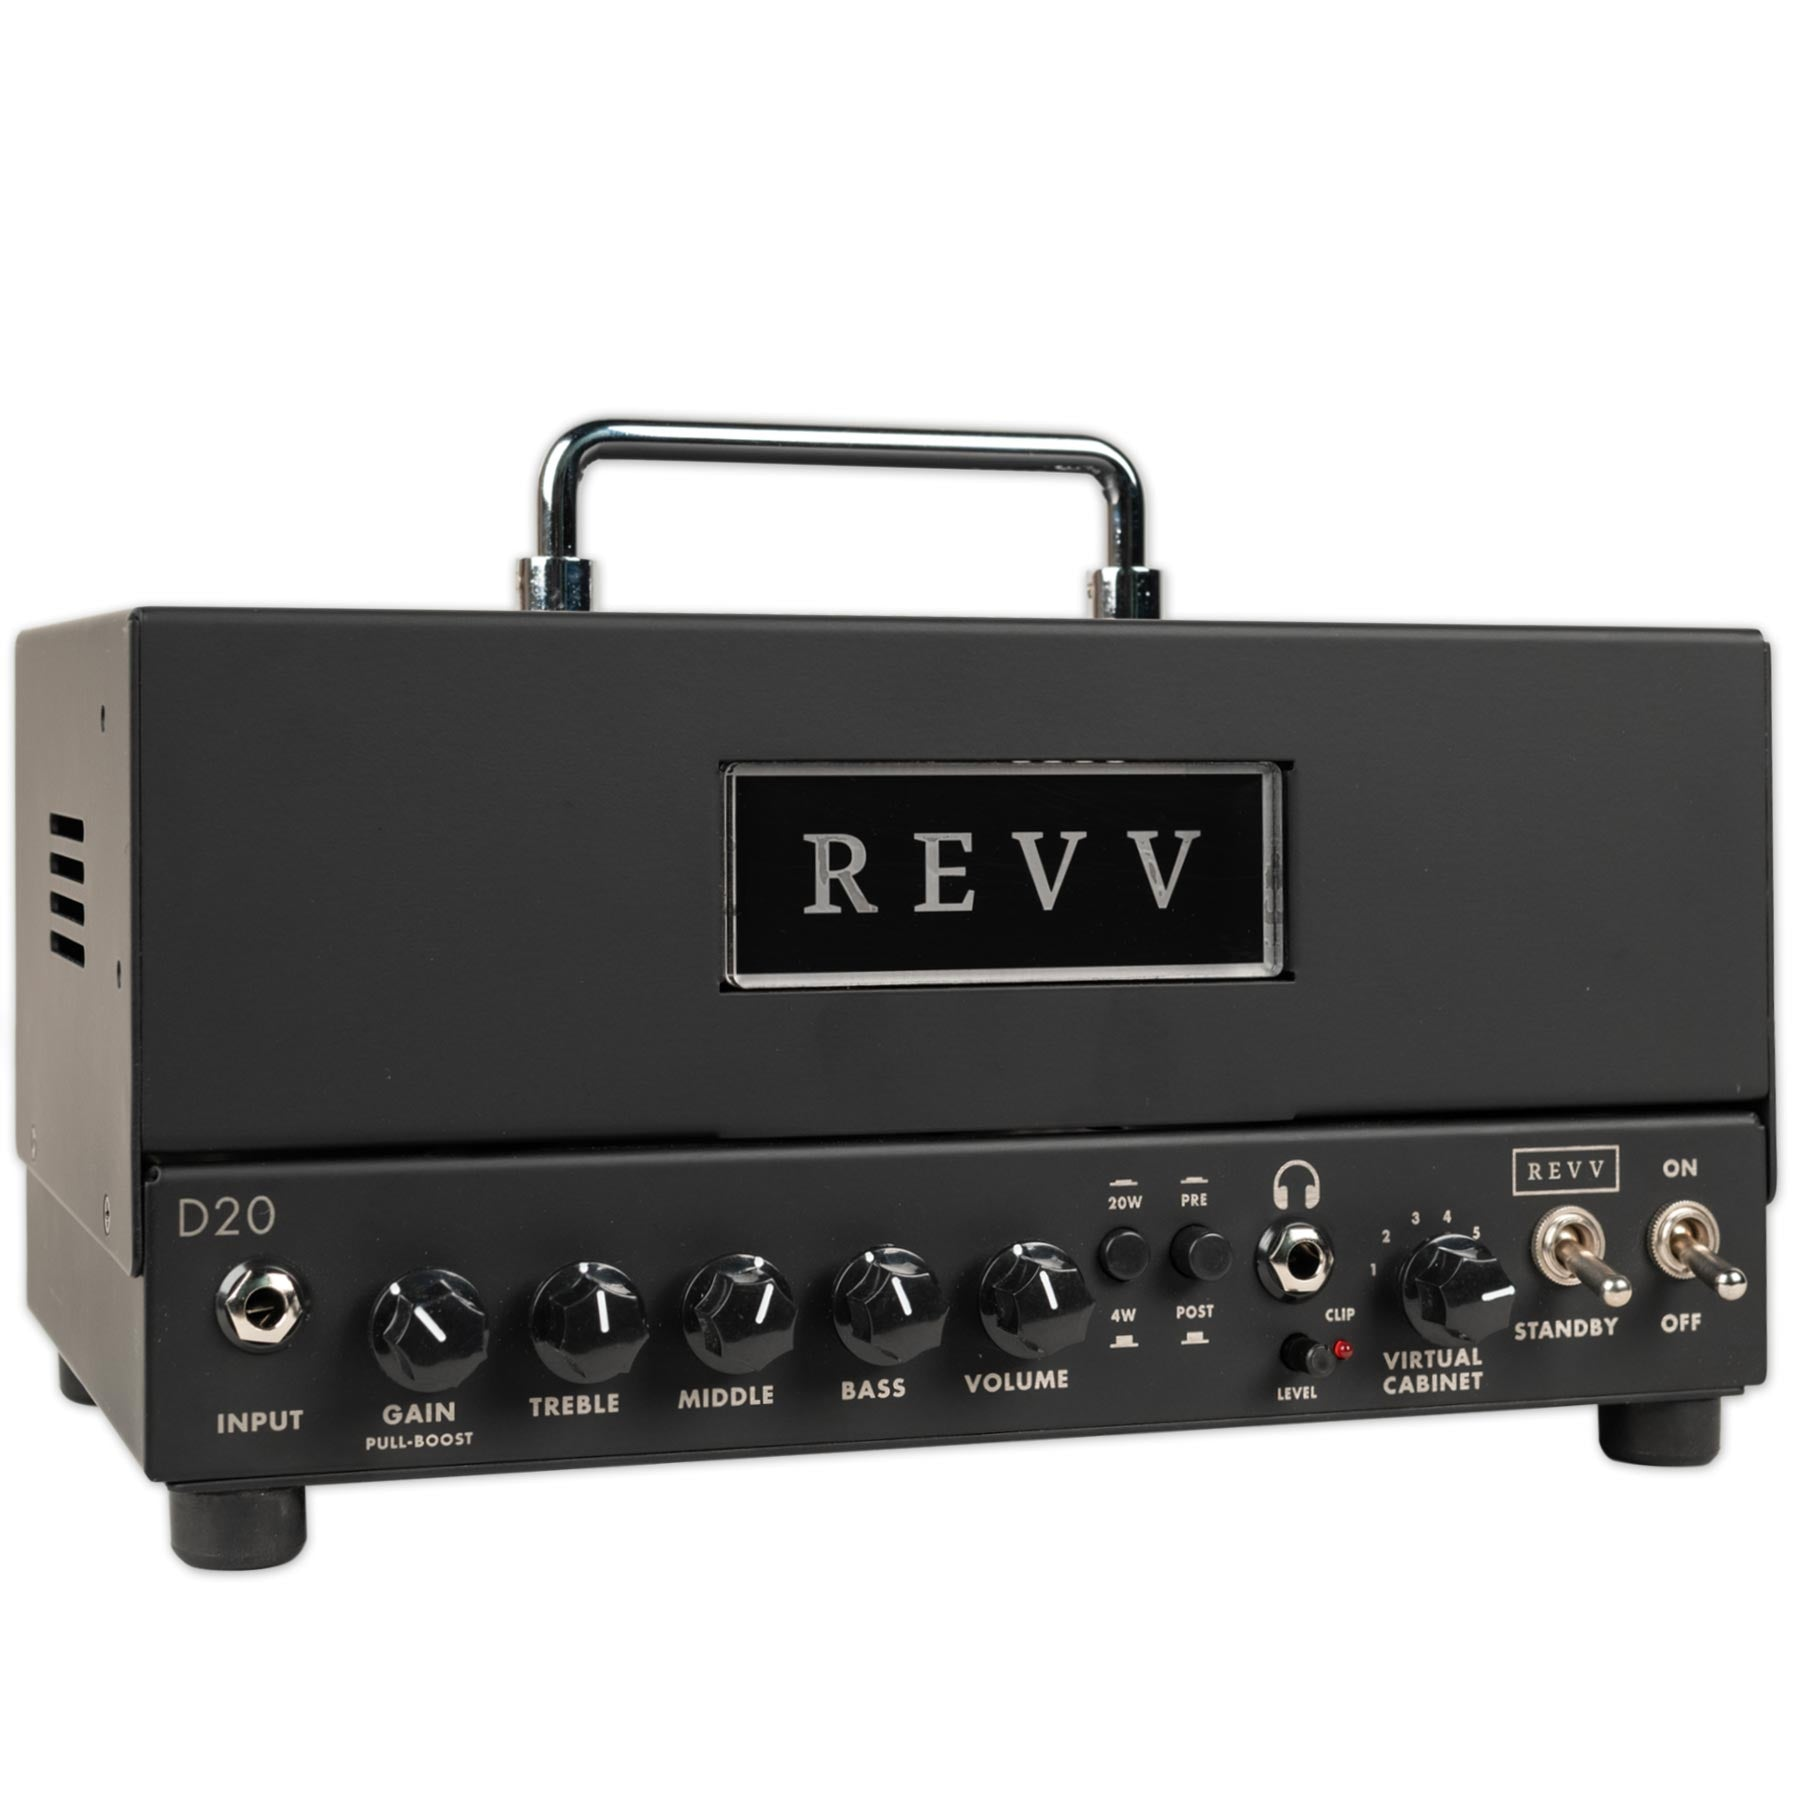 REVV D20 TWO NOTES TORPEDO EMBEDDED LUNCHBOX GUITAR AMPLIFIER